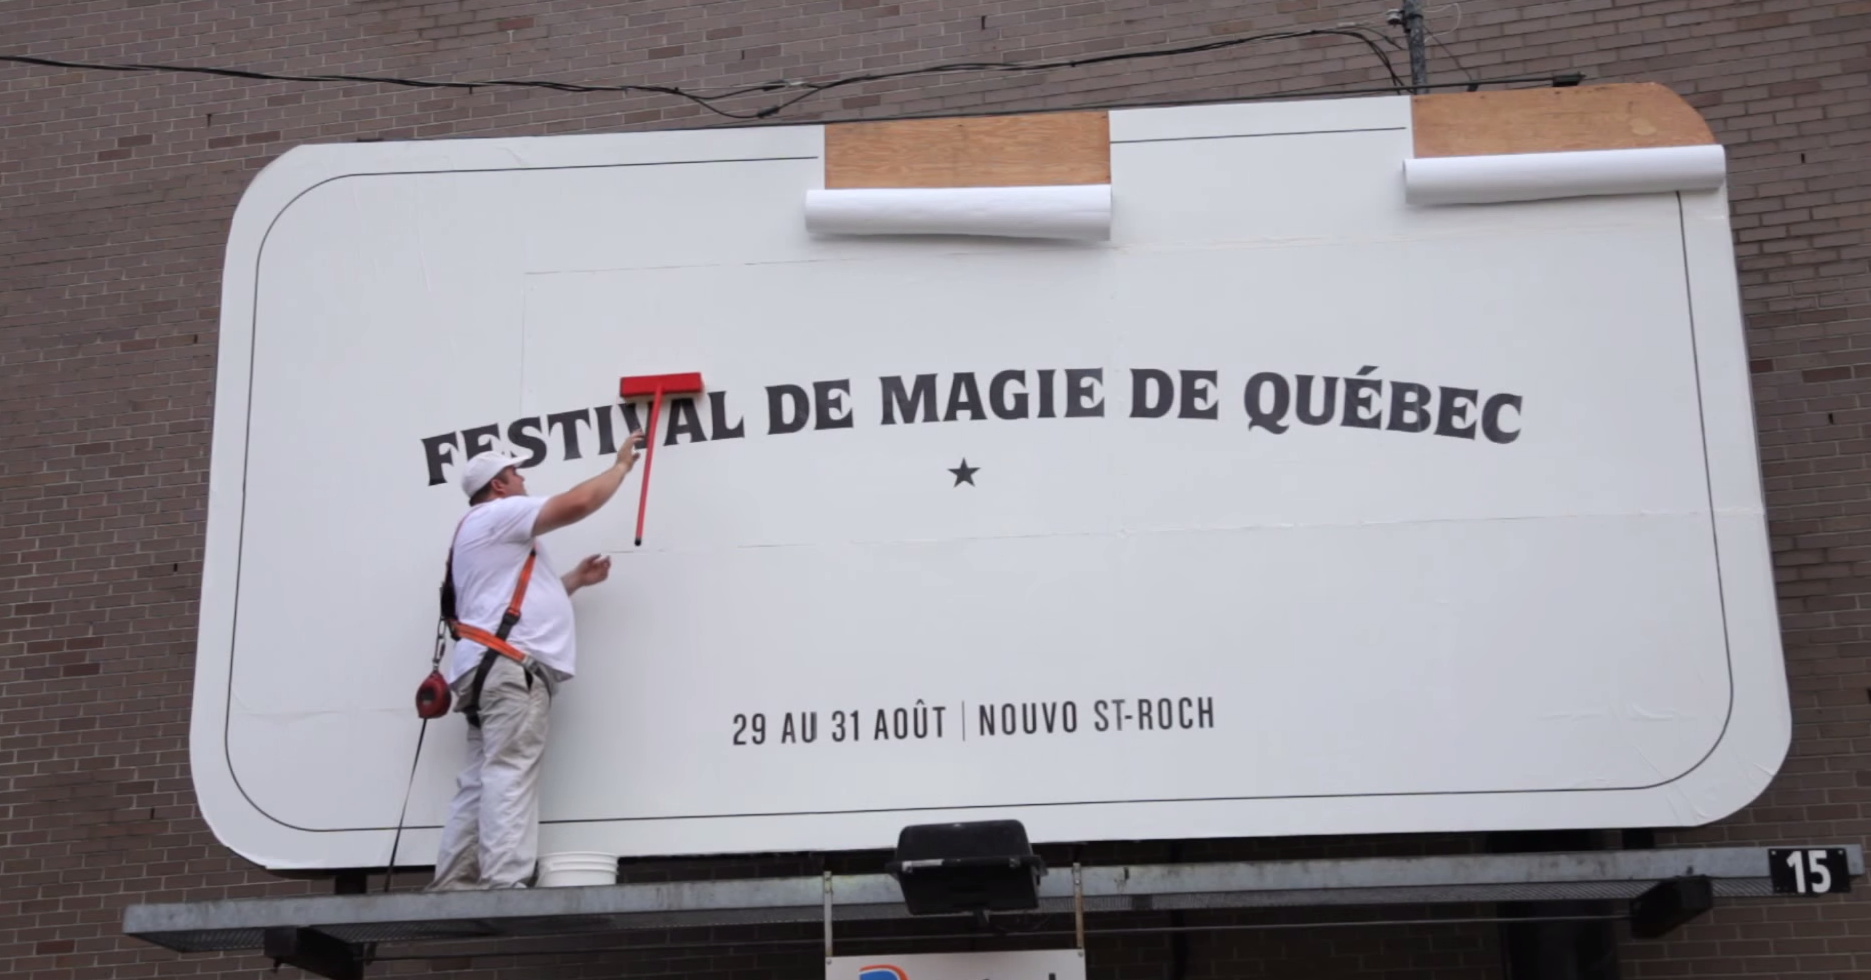 Brilliant promo for the Magical Festival of Quebec